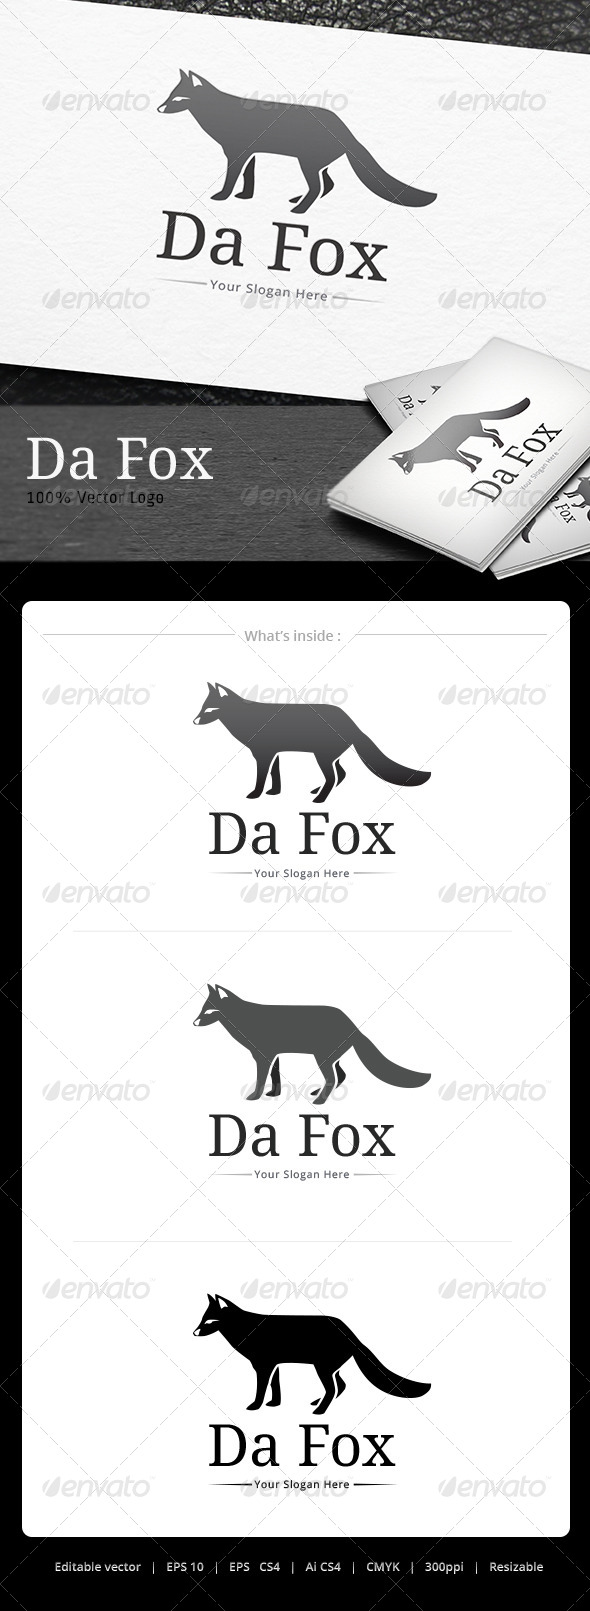 GraphicRiver Da Fox Logo 5074497